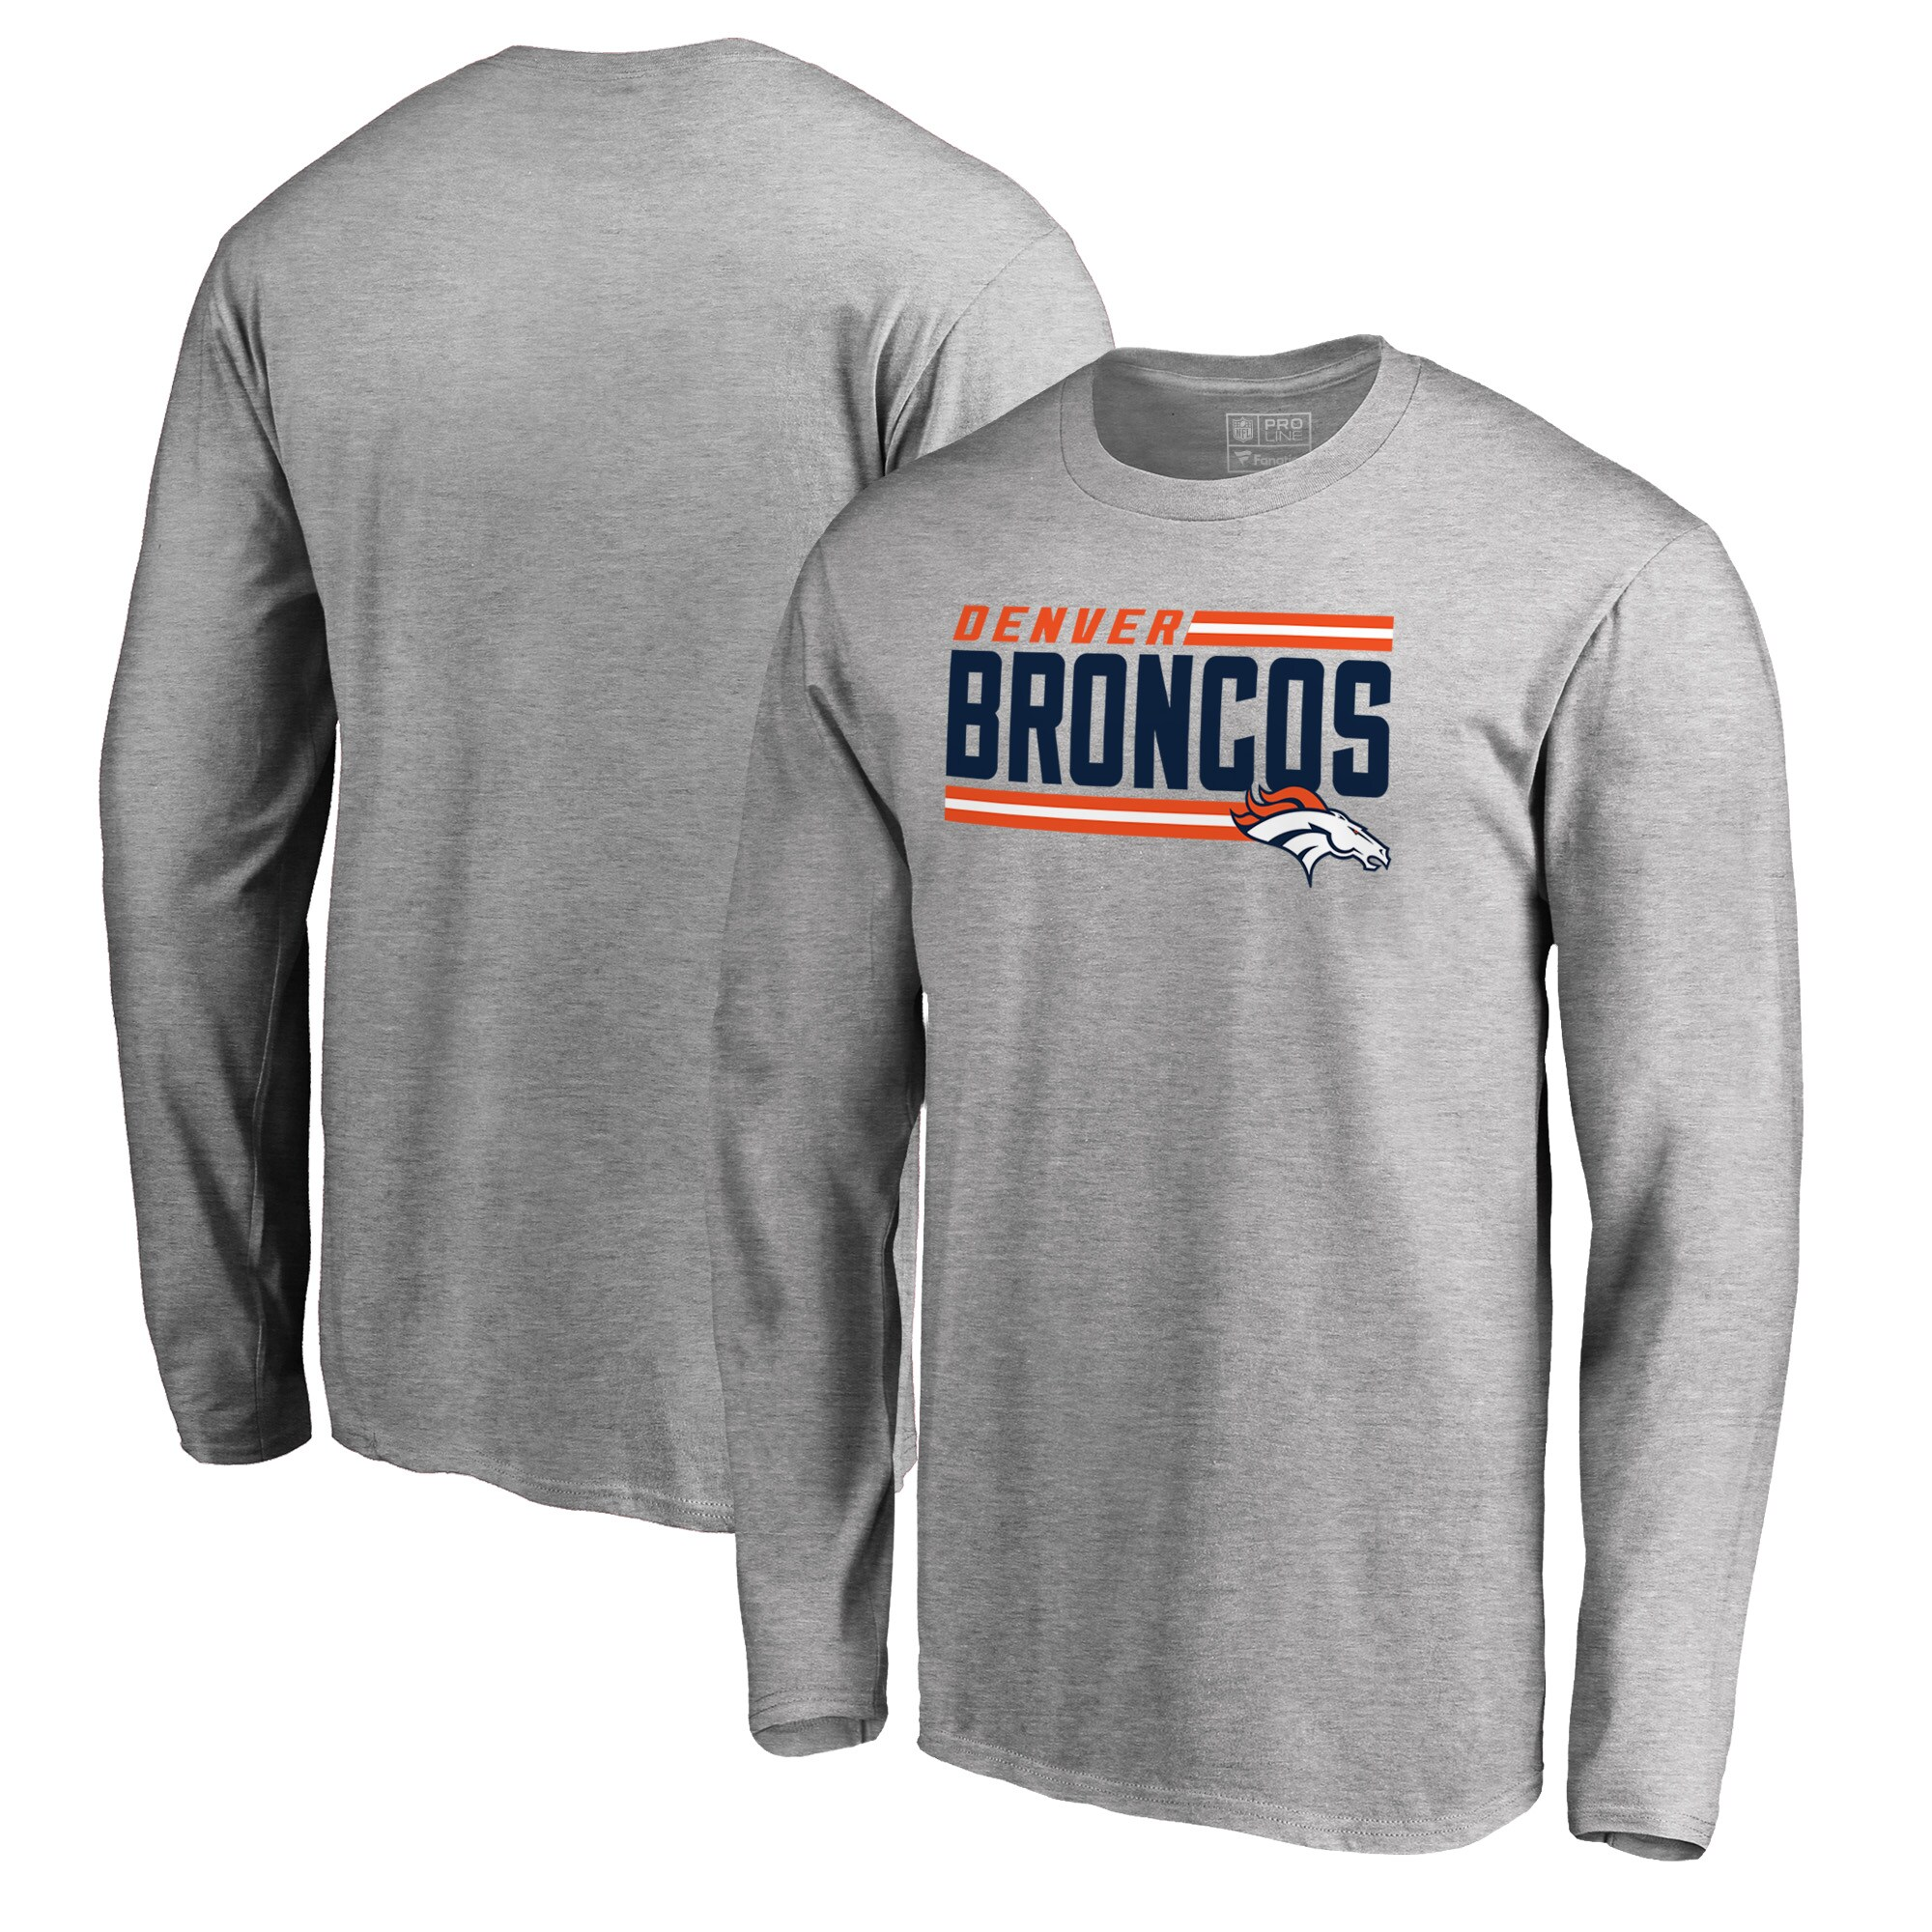 Denver Broncos NFL Pro Line by Fanatics Branded Iconic Collection On Side Stripe Long Sleeve T-Shirt - Ash